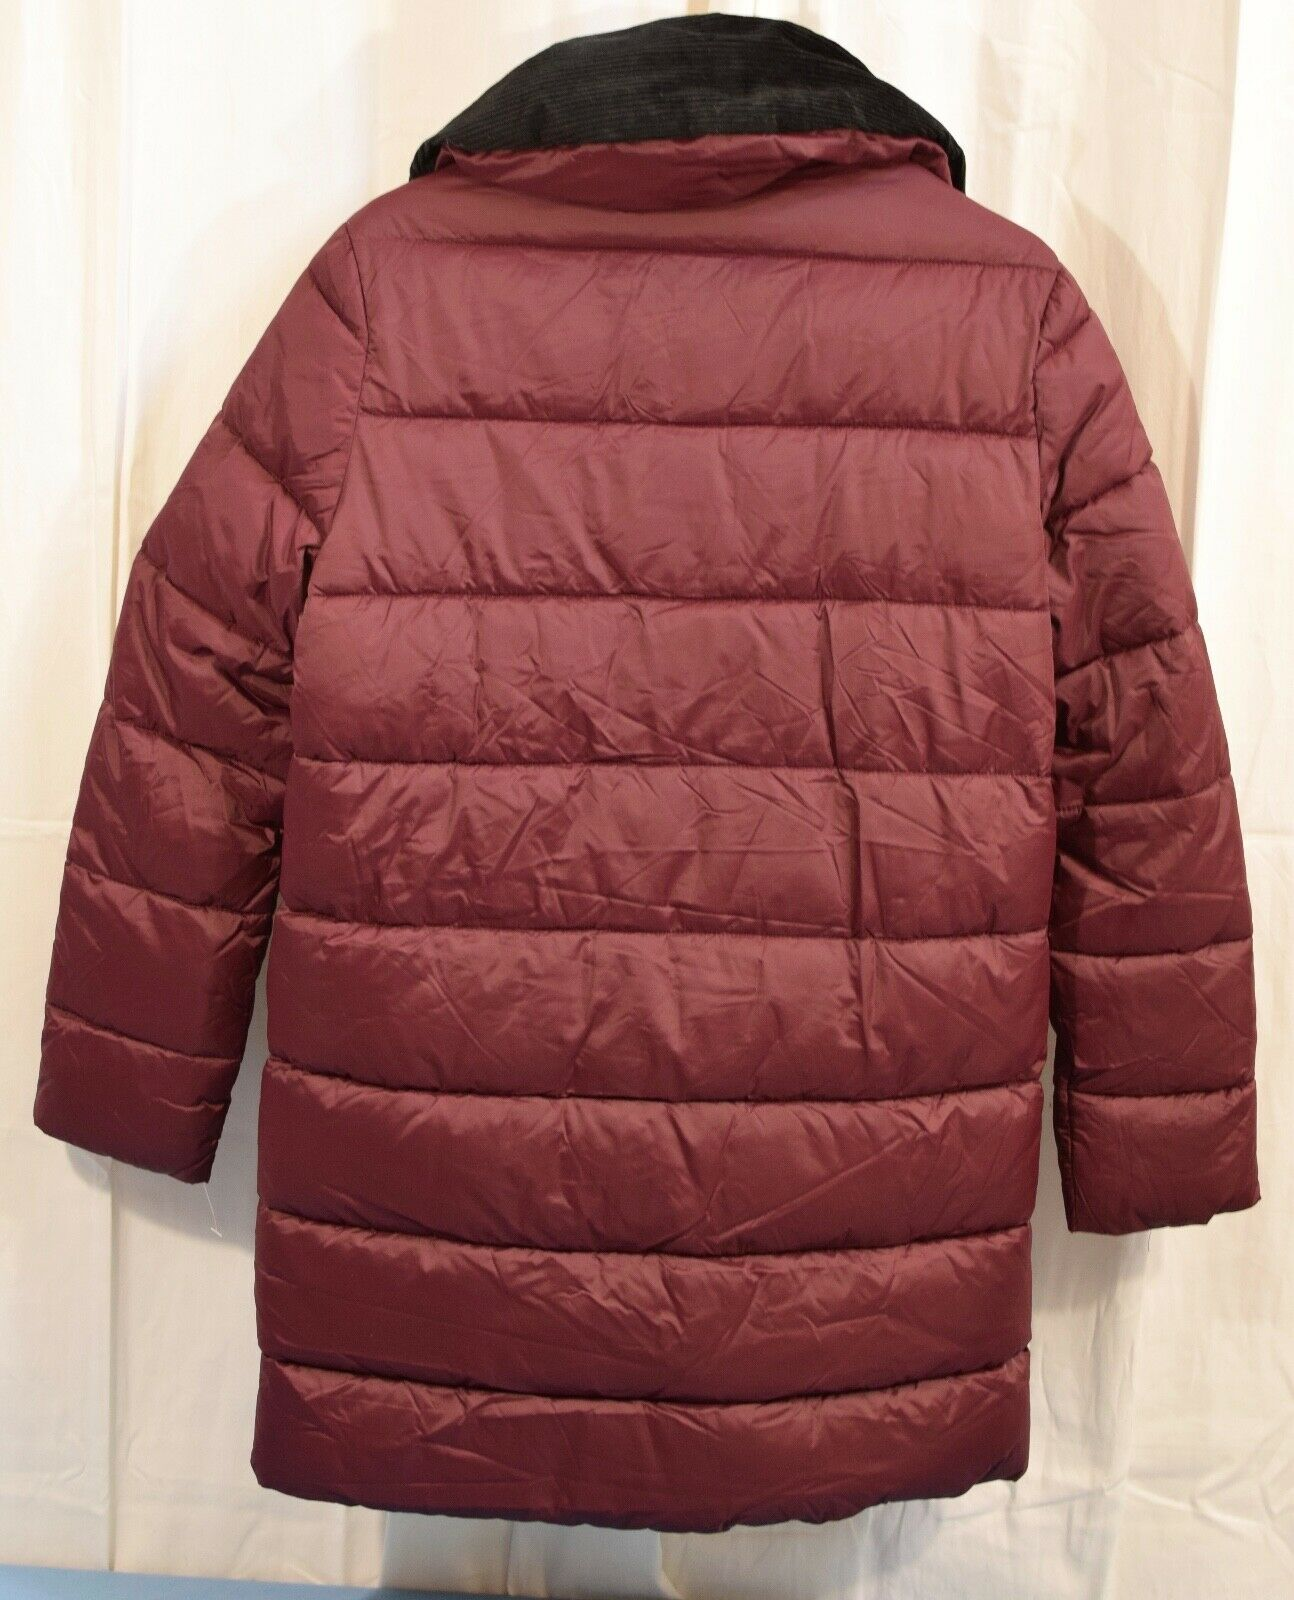 Barbour Women's Quilted Puffer Cranberry Size 8 - image 2